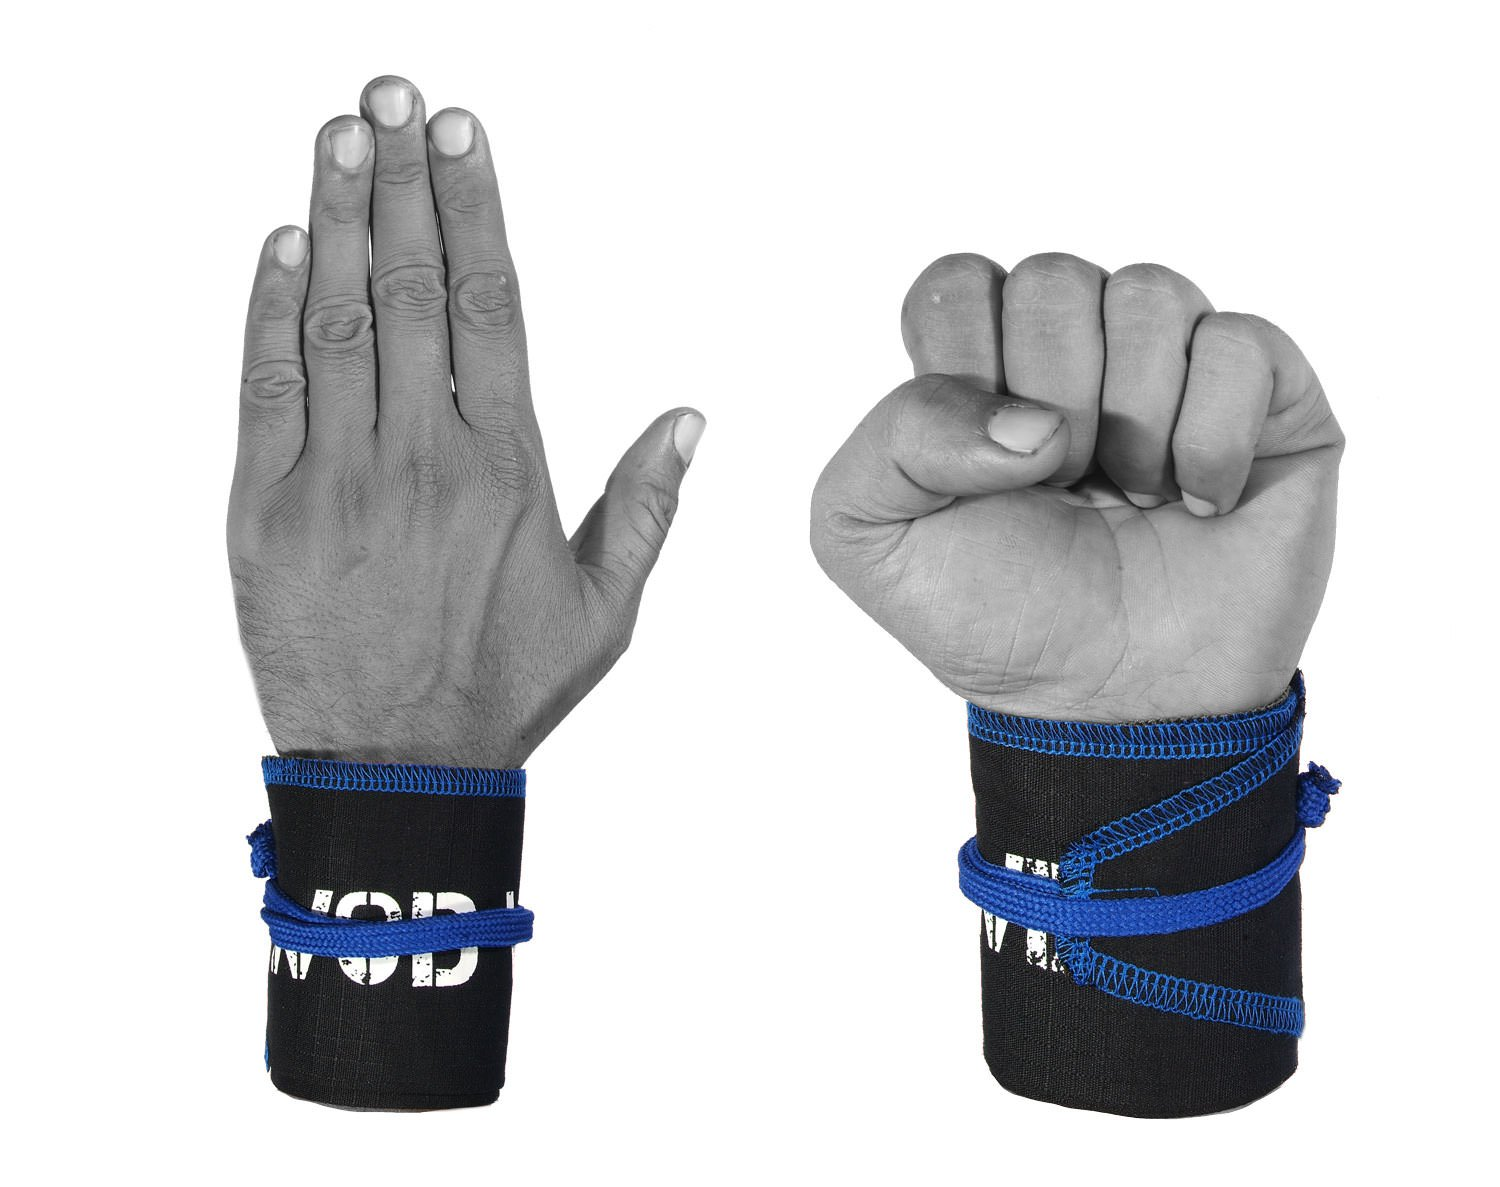 Wrist Wraps for Fitness, Cross Training, Exercise, Bodybuilding, Olympic Weightlifting - Colors for Men and Women - Once Size Fits All - 100% (Black/Blue) by WOD Wear